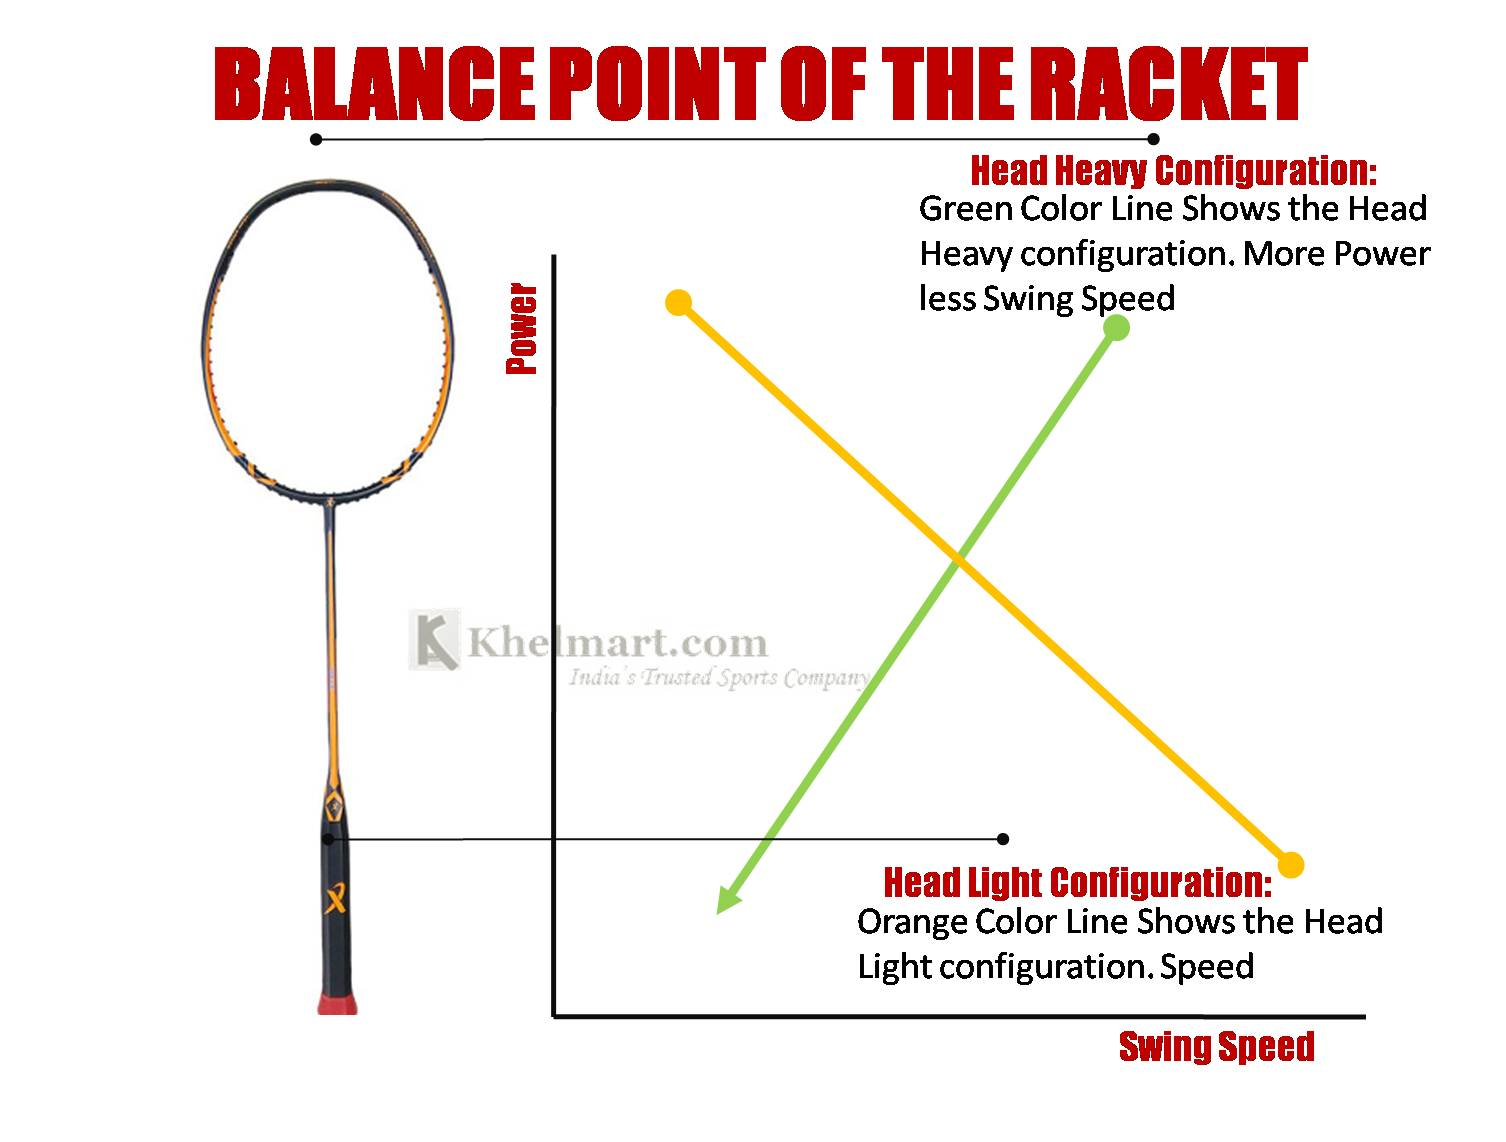 Balance_Point_Badminton_racket_Khelmart